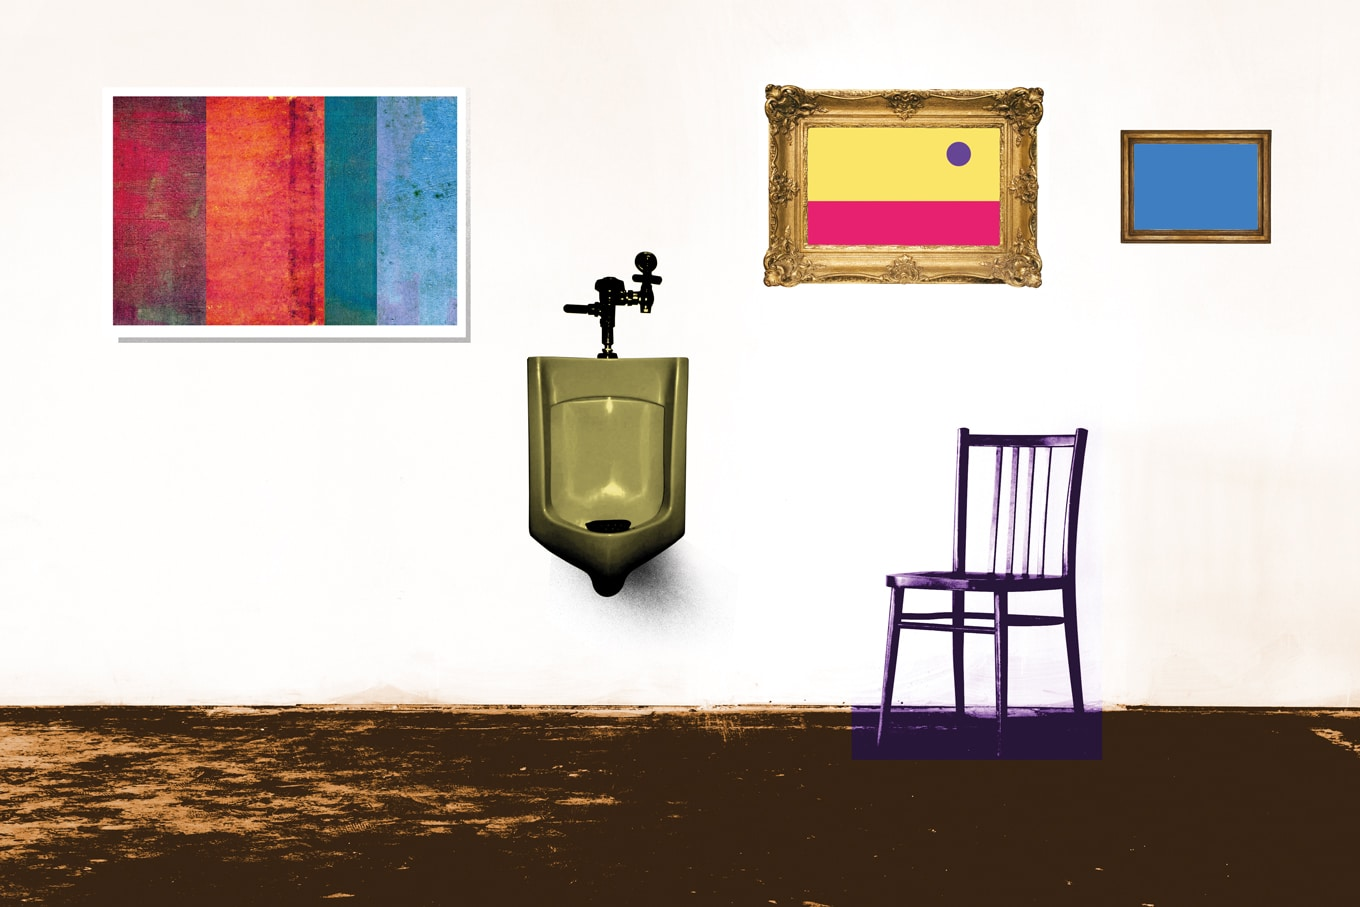 Gallery with paintings, a chair and an urinal